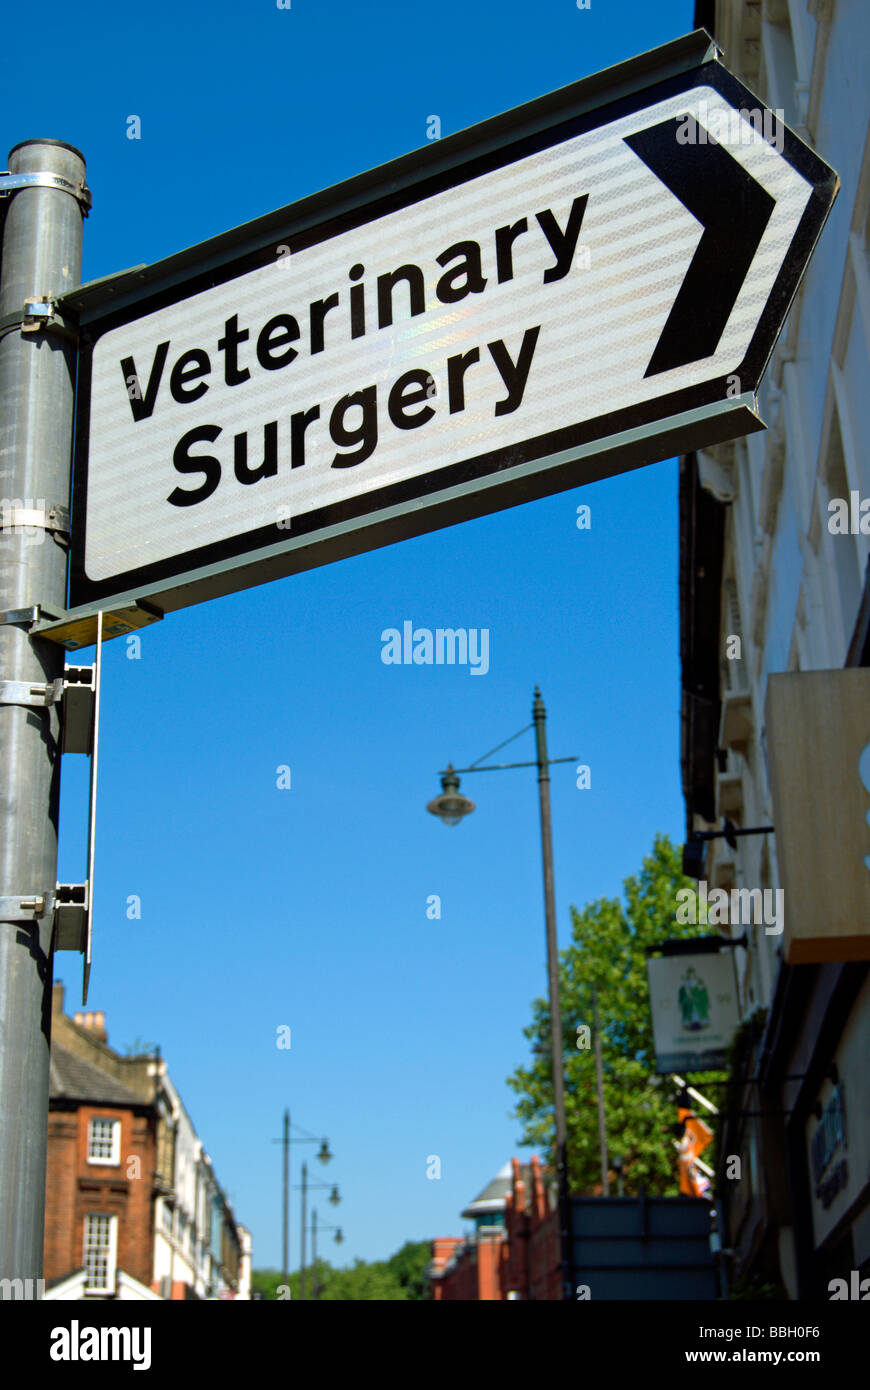 british street sign with right pointing arrow for veterinary surgery - Stock Image